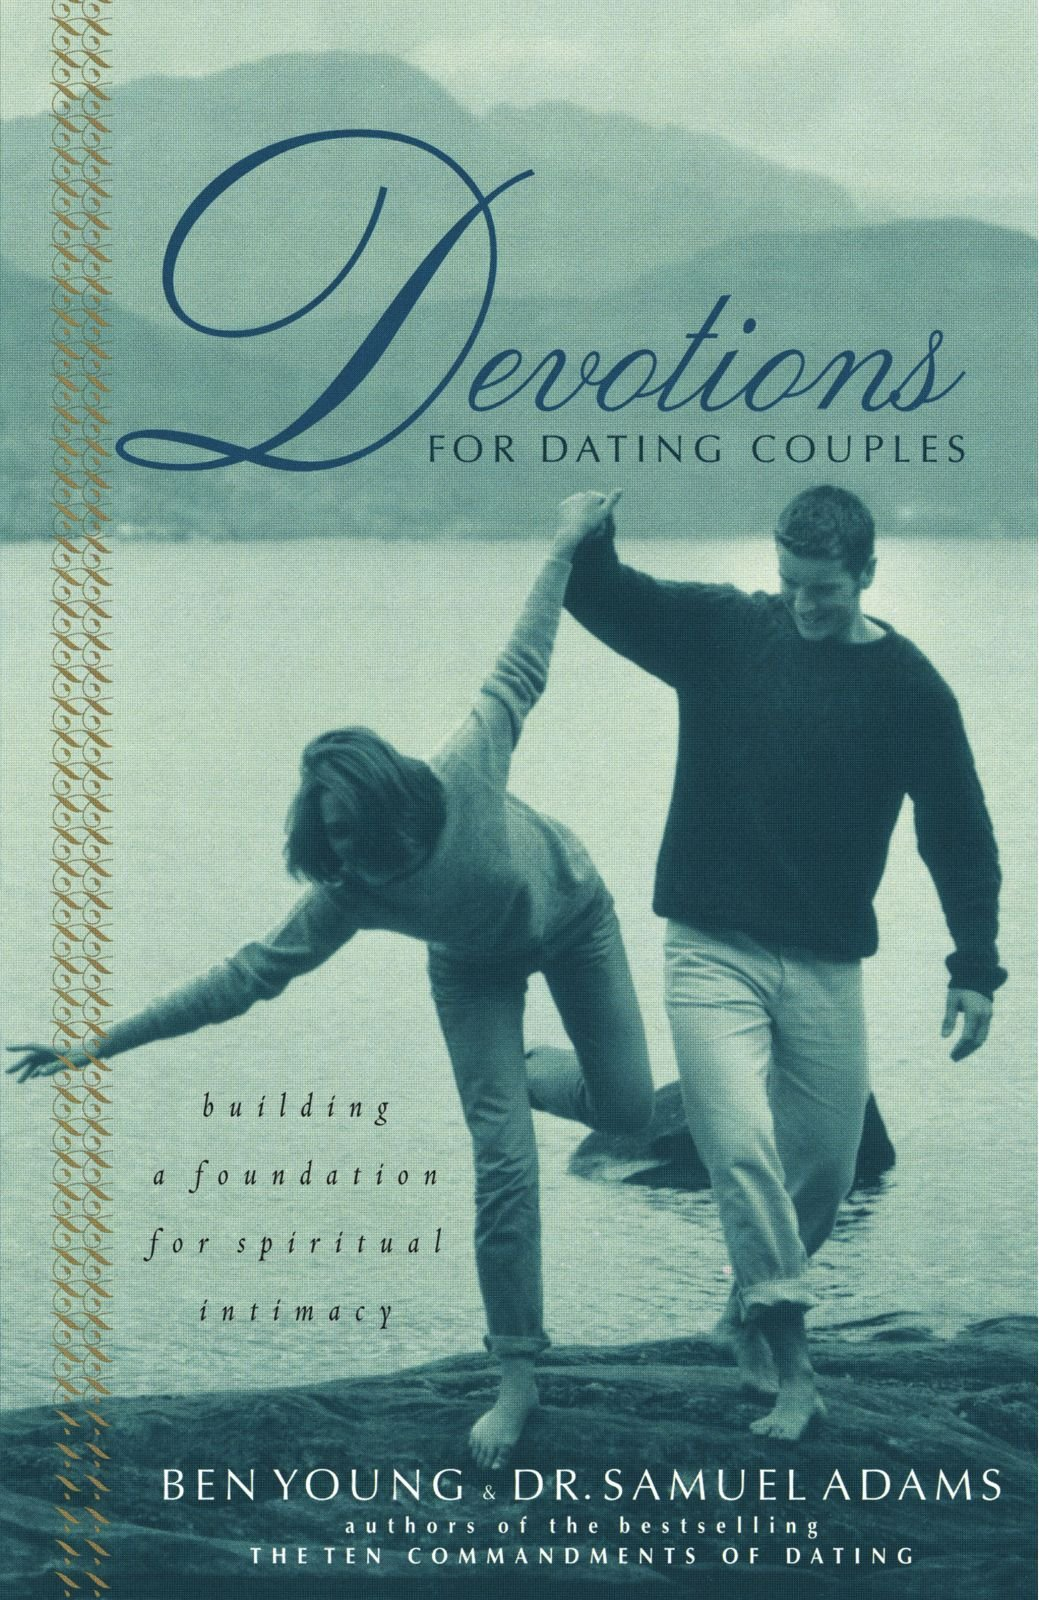 Devotions For Dating Couples  Building A Foundation For Spiritual     Amazon com Devotions For Dating Couples  Building A Foundation For Spiritual Intimacy  Ben Young  Samuel Adams                 Amazon com  Books